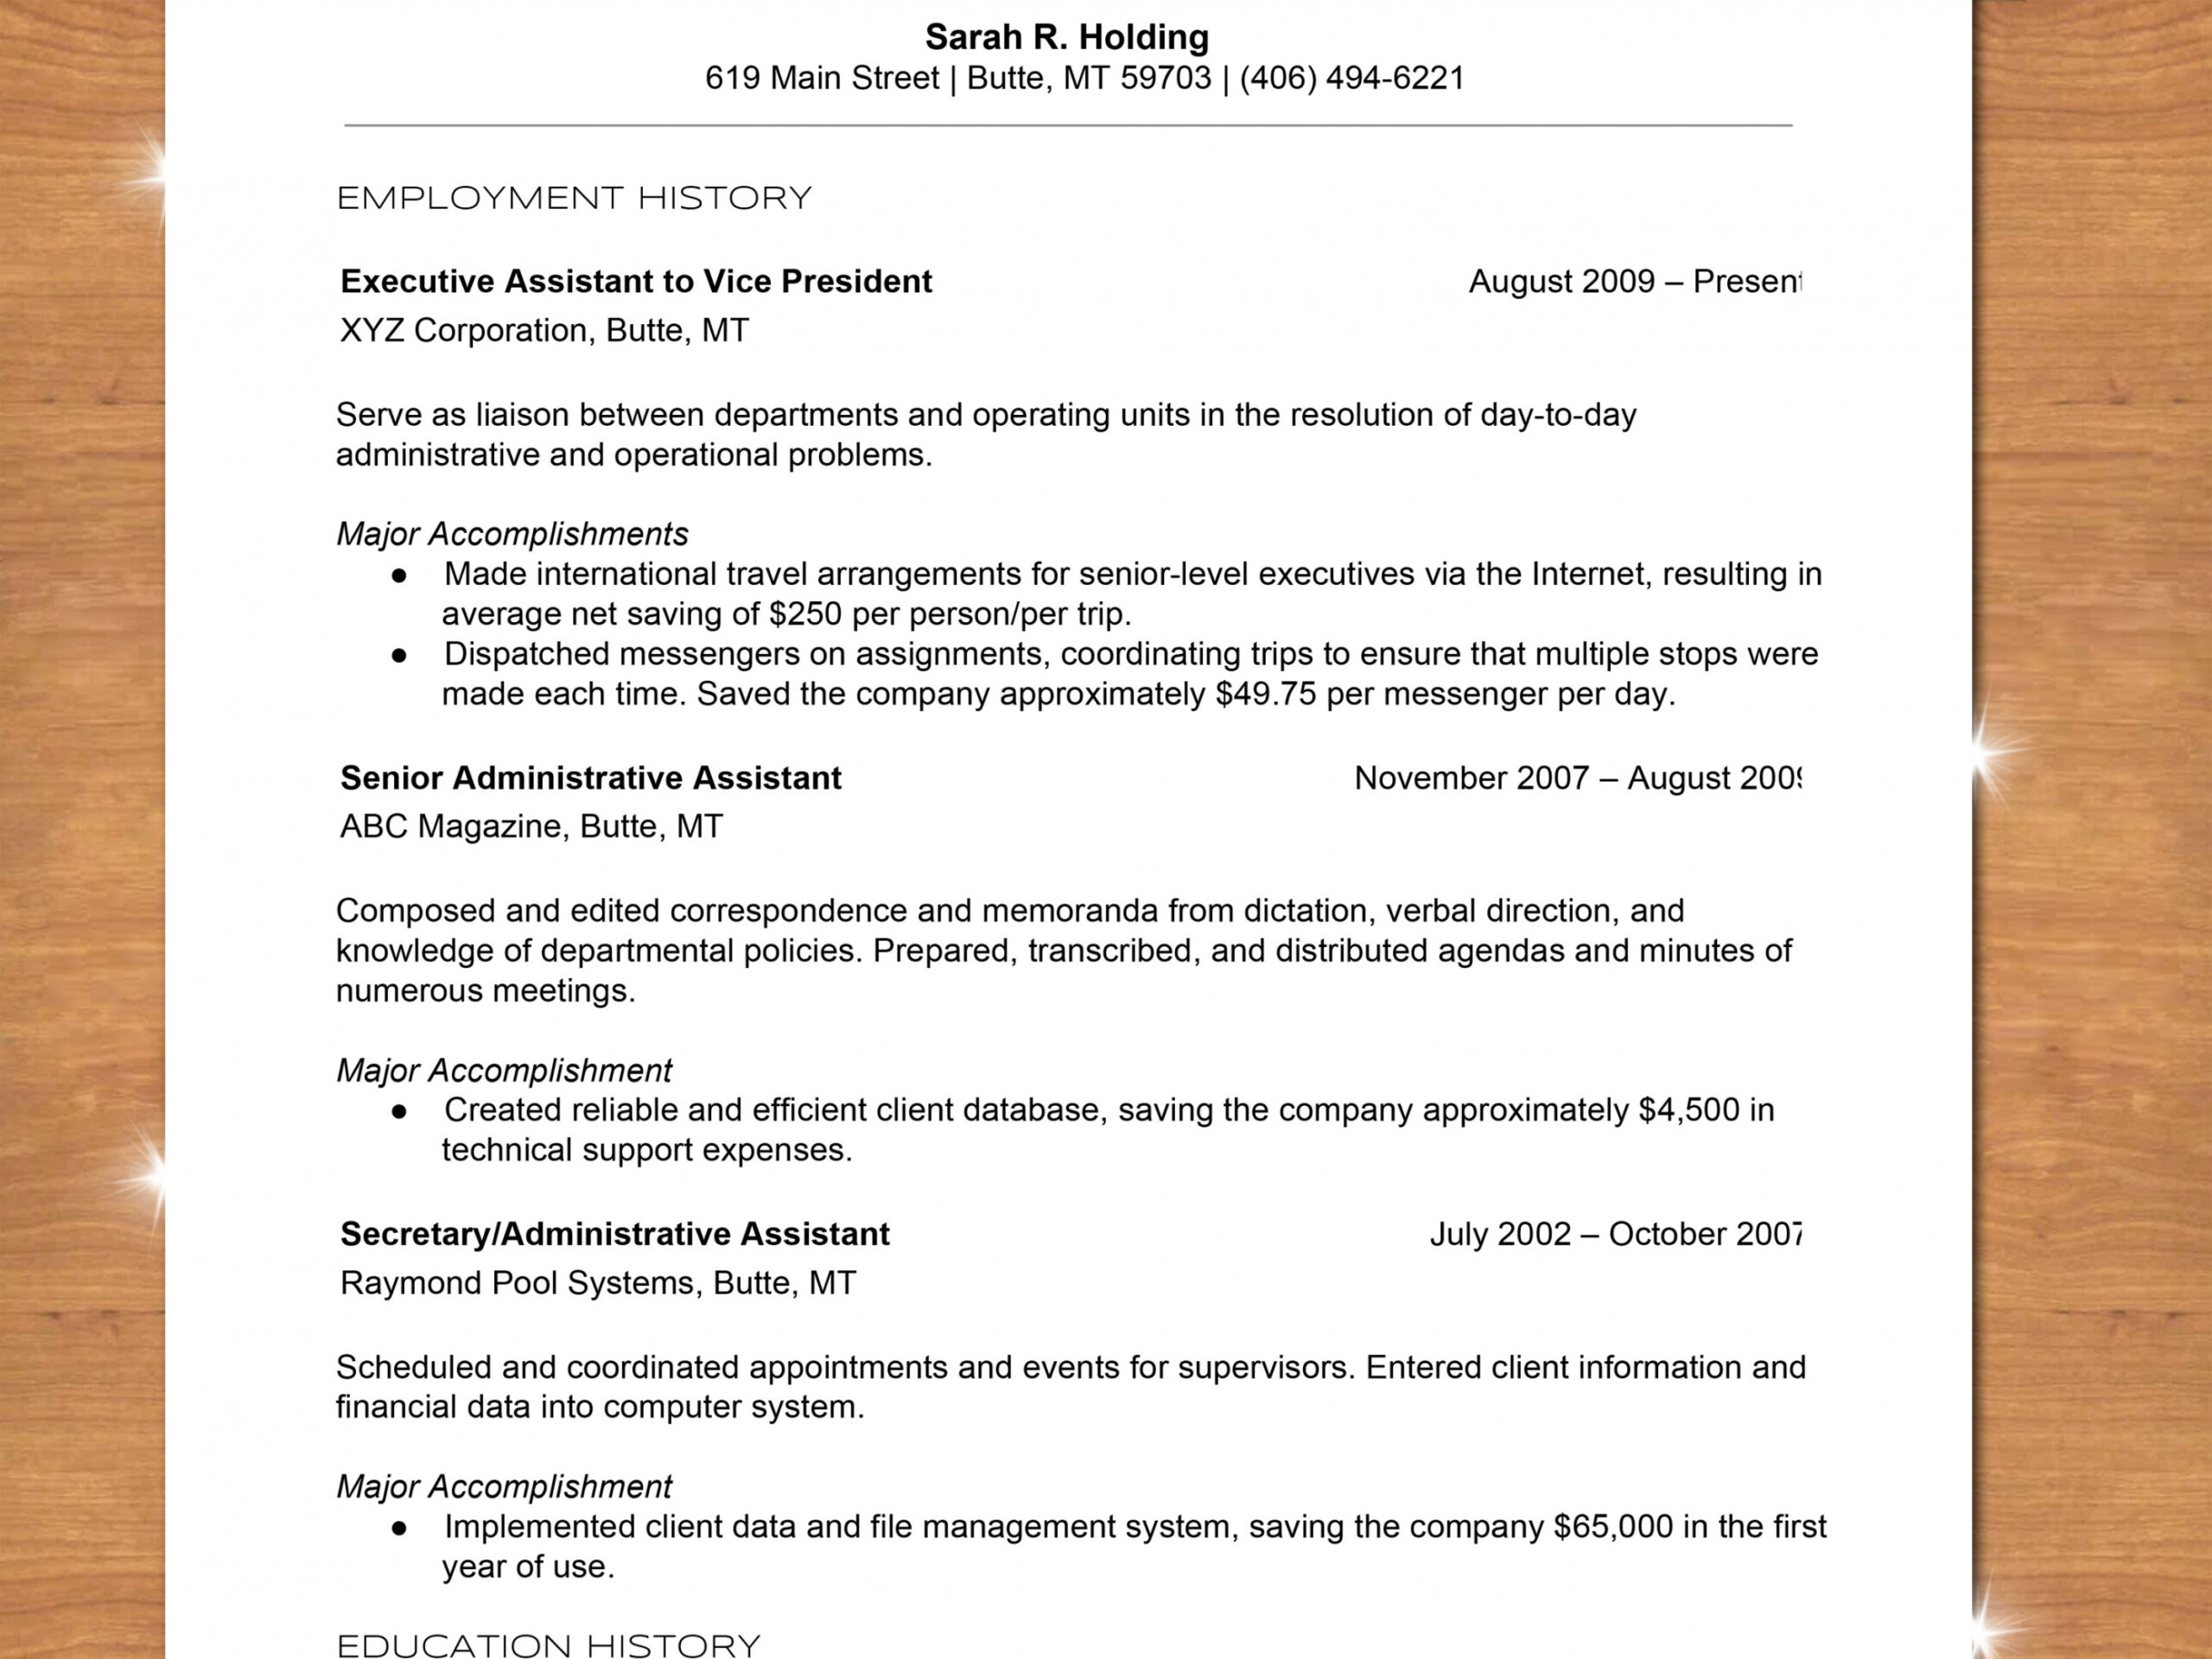 chronological order of education on resume template builder example to write with sample Resume Order Of Education On Resume